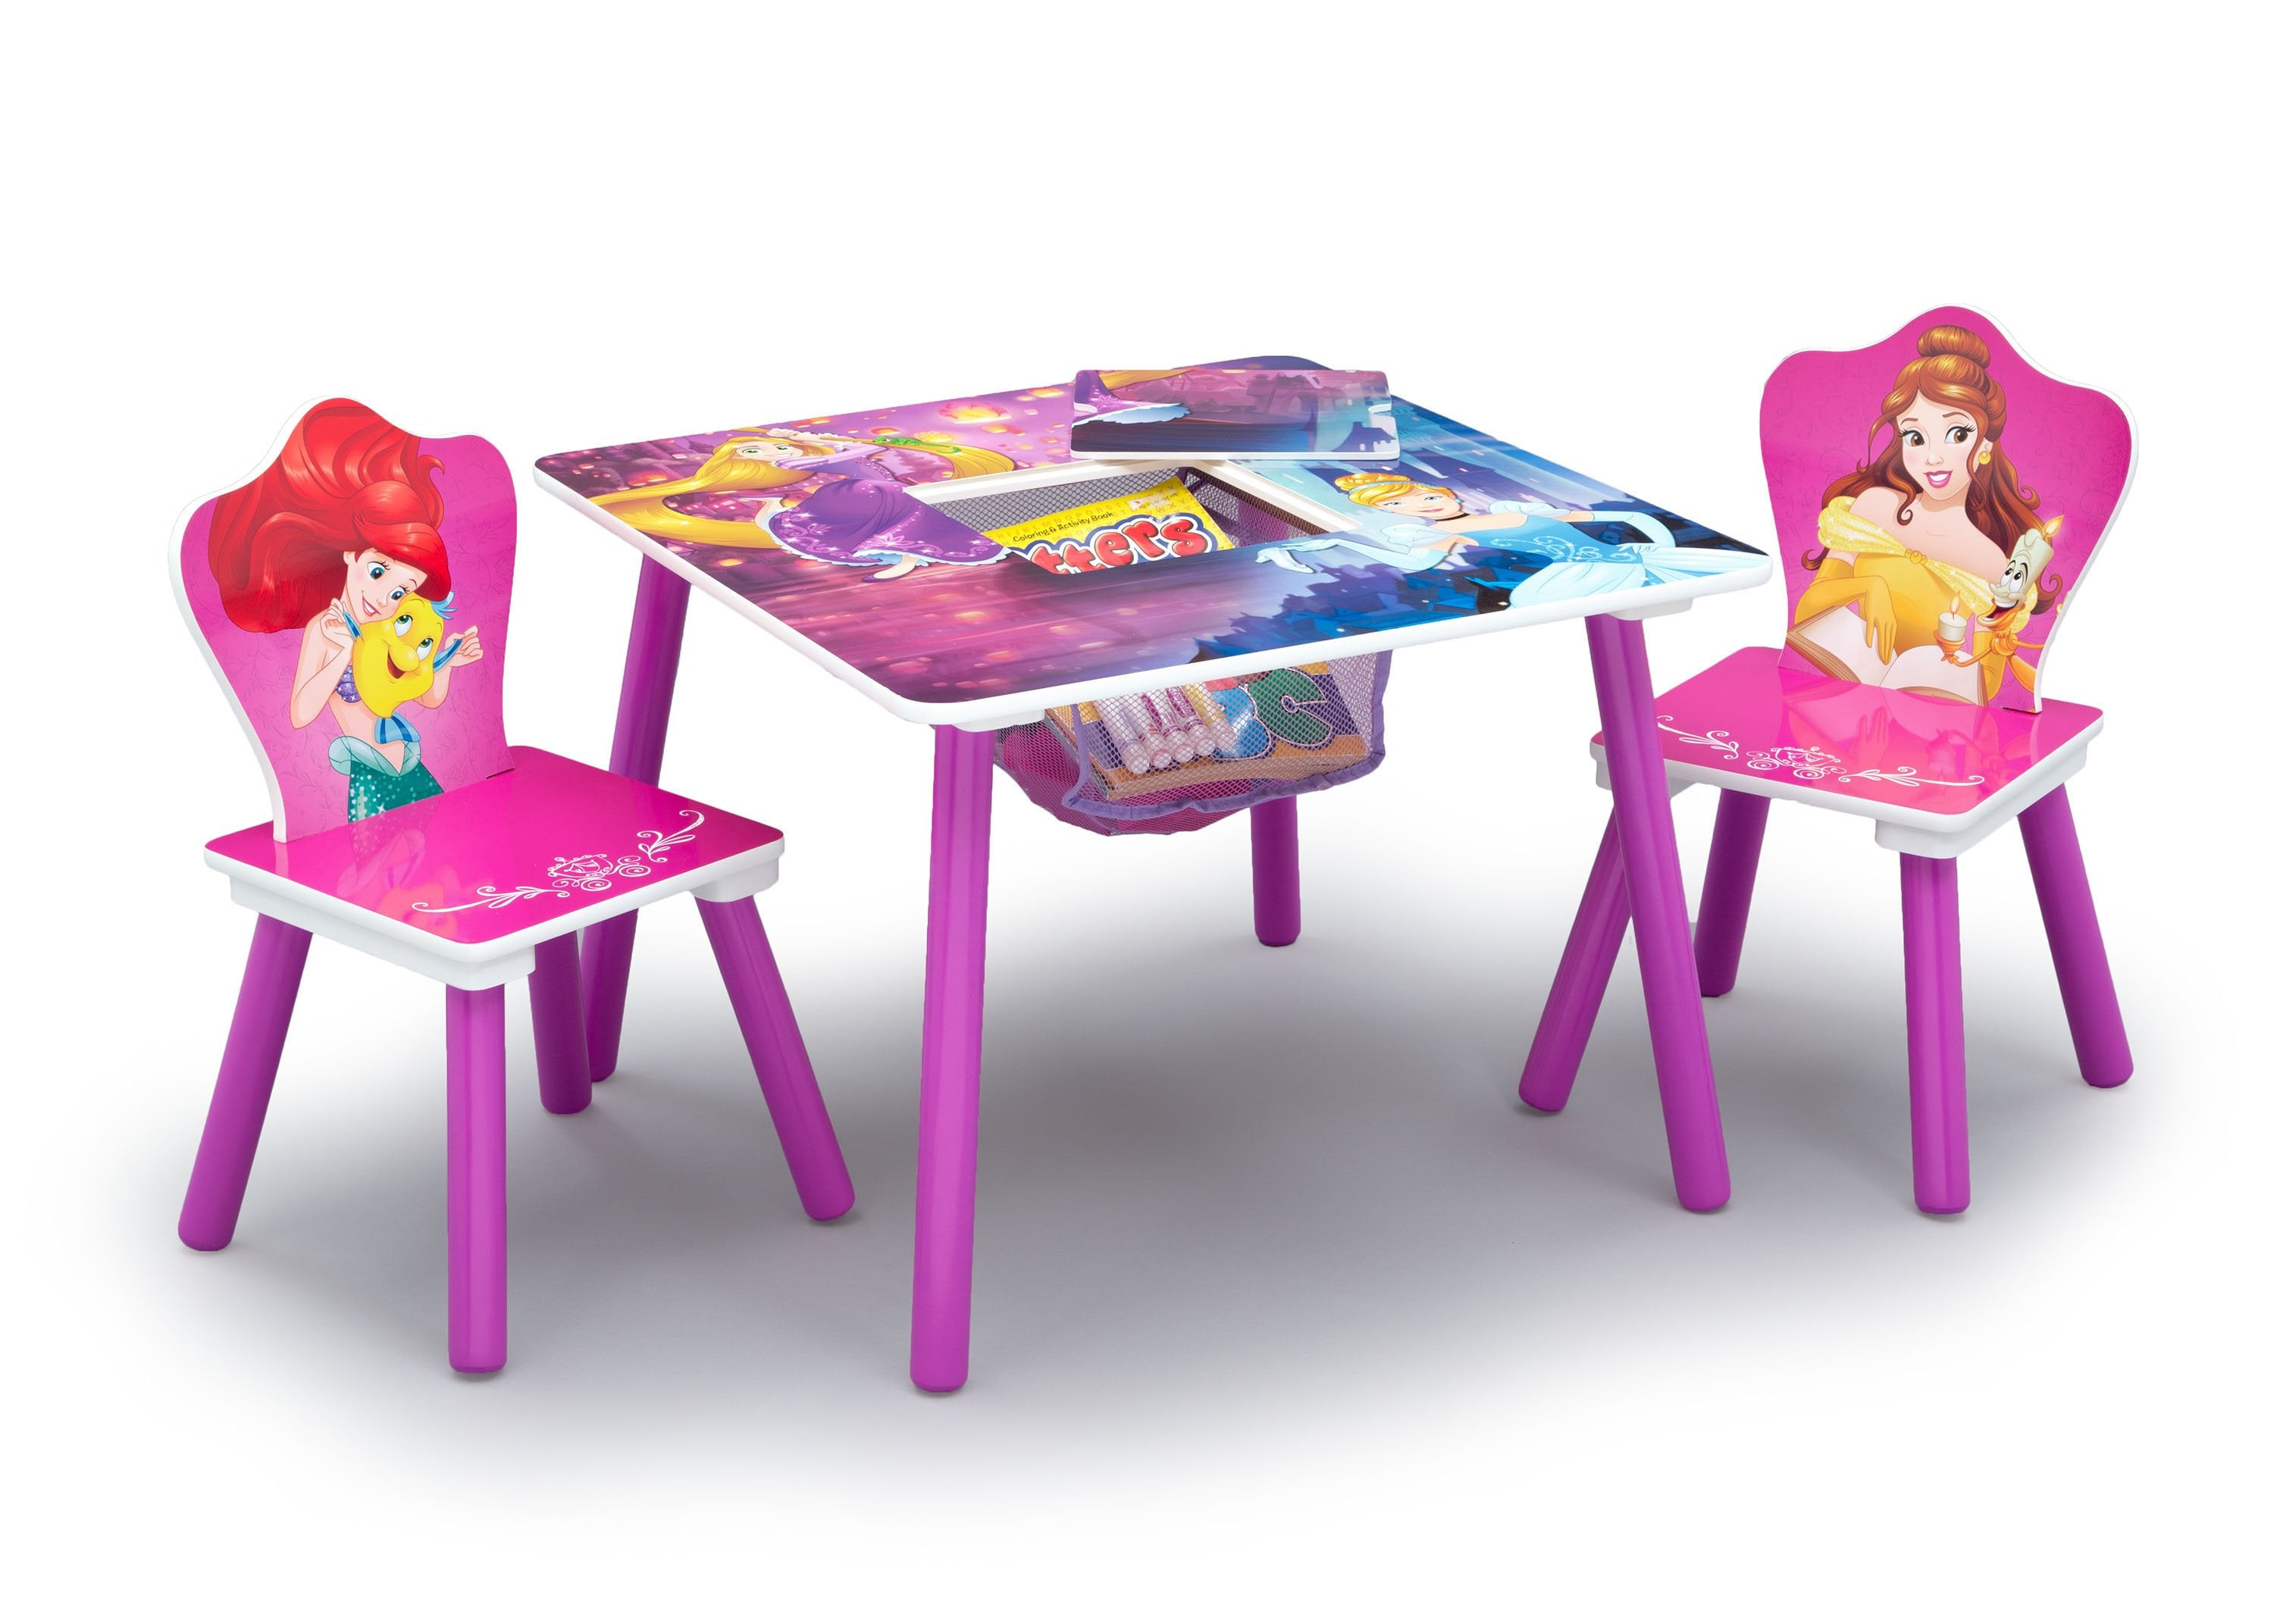 ... Disney Princess (1034) Table and Chair Set with Storage (TT89562PS) Table ...  sc 1 st  Delta Children & Princess Table and Chair Set With Storage | Delta Children